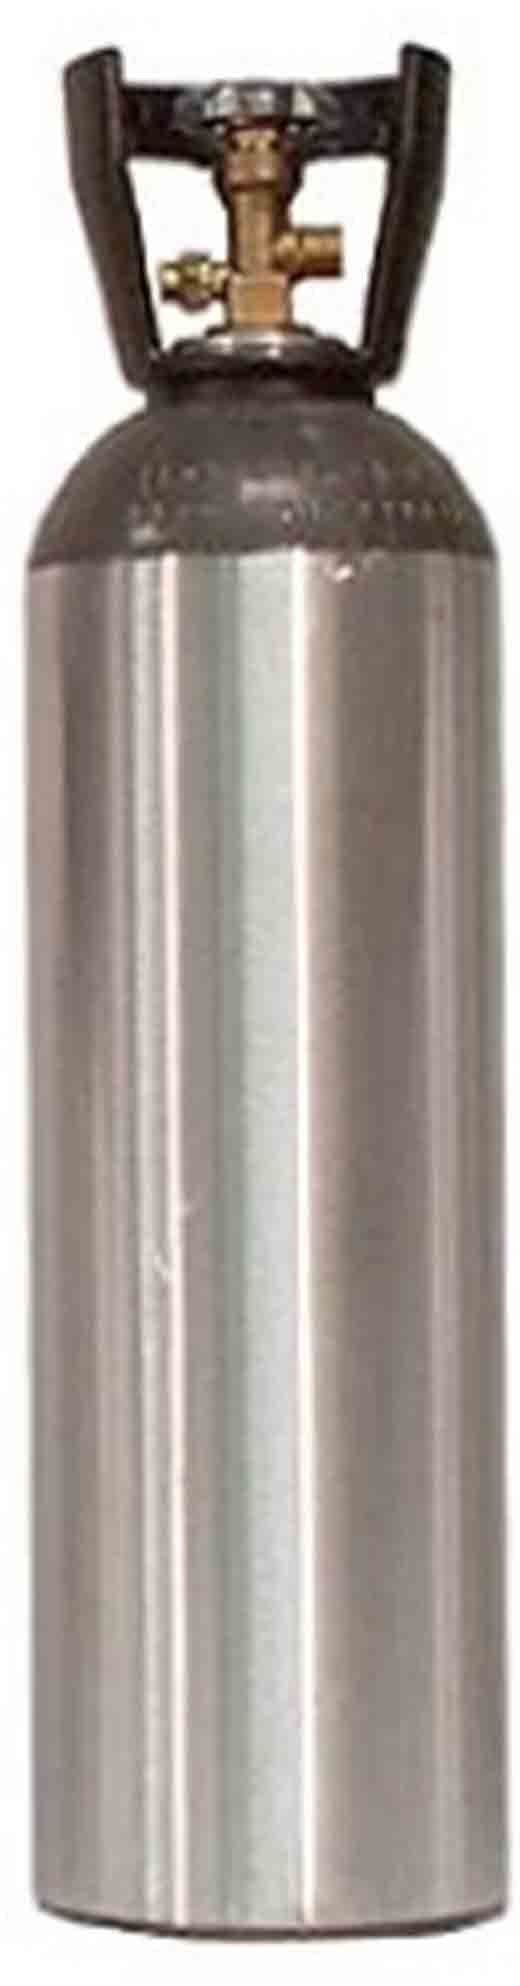 CO2 Aluminum 15 Pound Cylinder Tank New Empty - Sherwood CGA 320 Valve, Carry Handle (Beverage, Welding, Beer Systems)